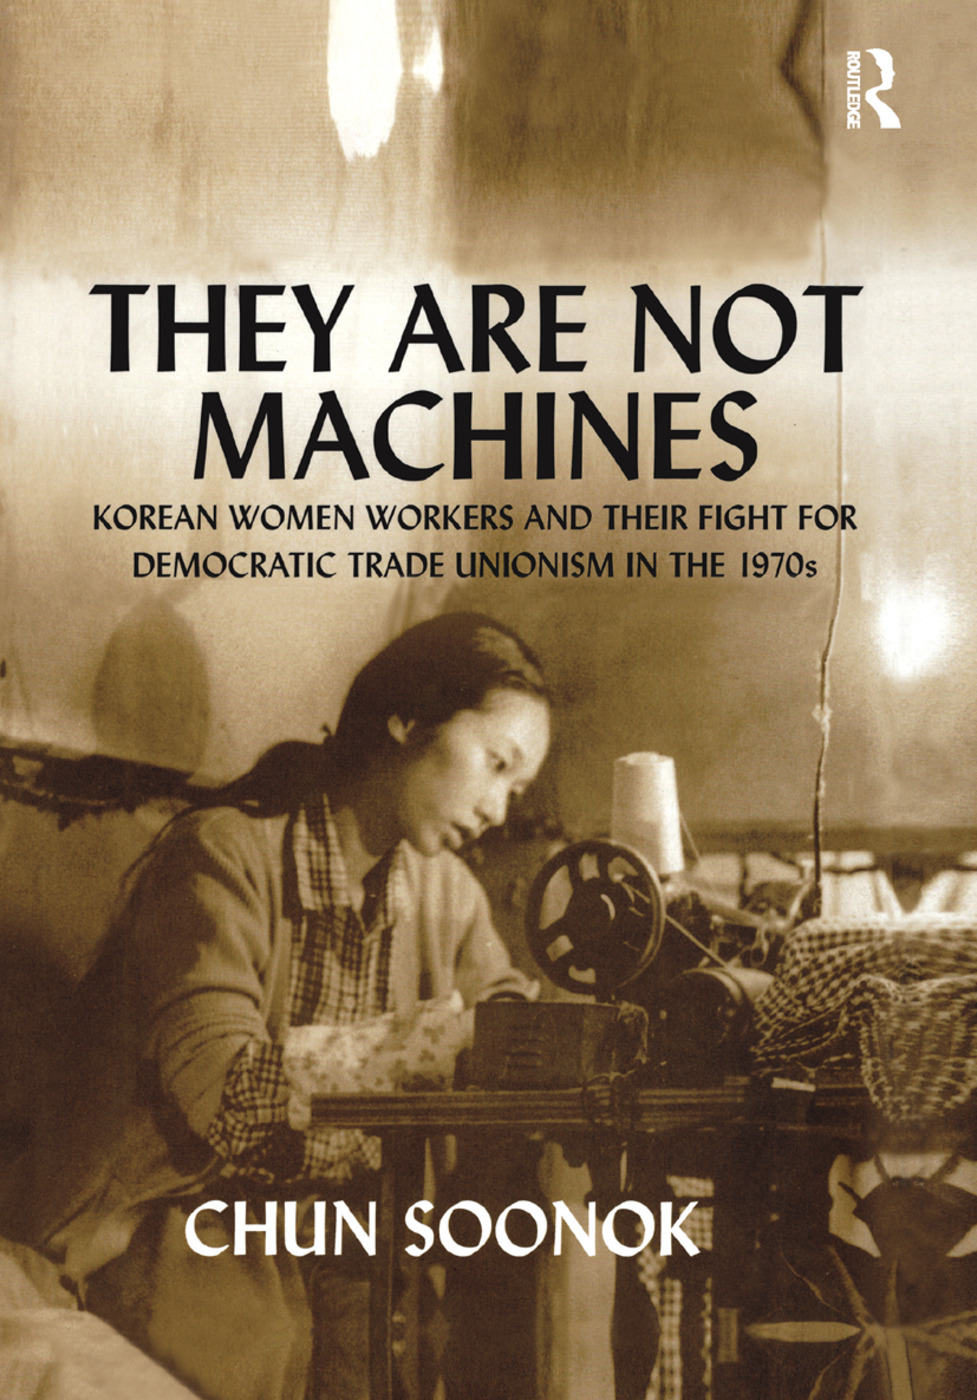 They Are Not Machines: Korean Women Workers and their Fight for Democratic Trade Unionism in the 1970s book cover